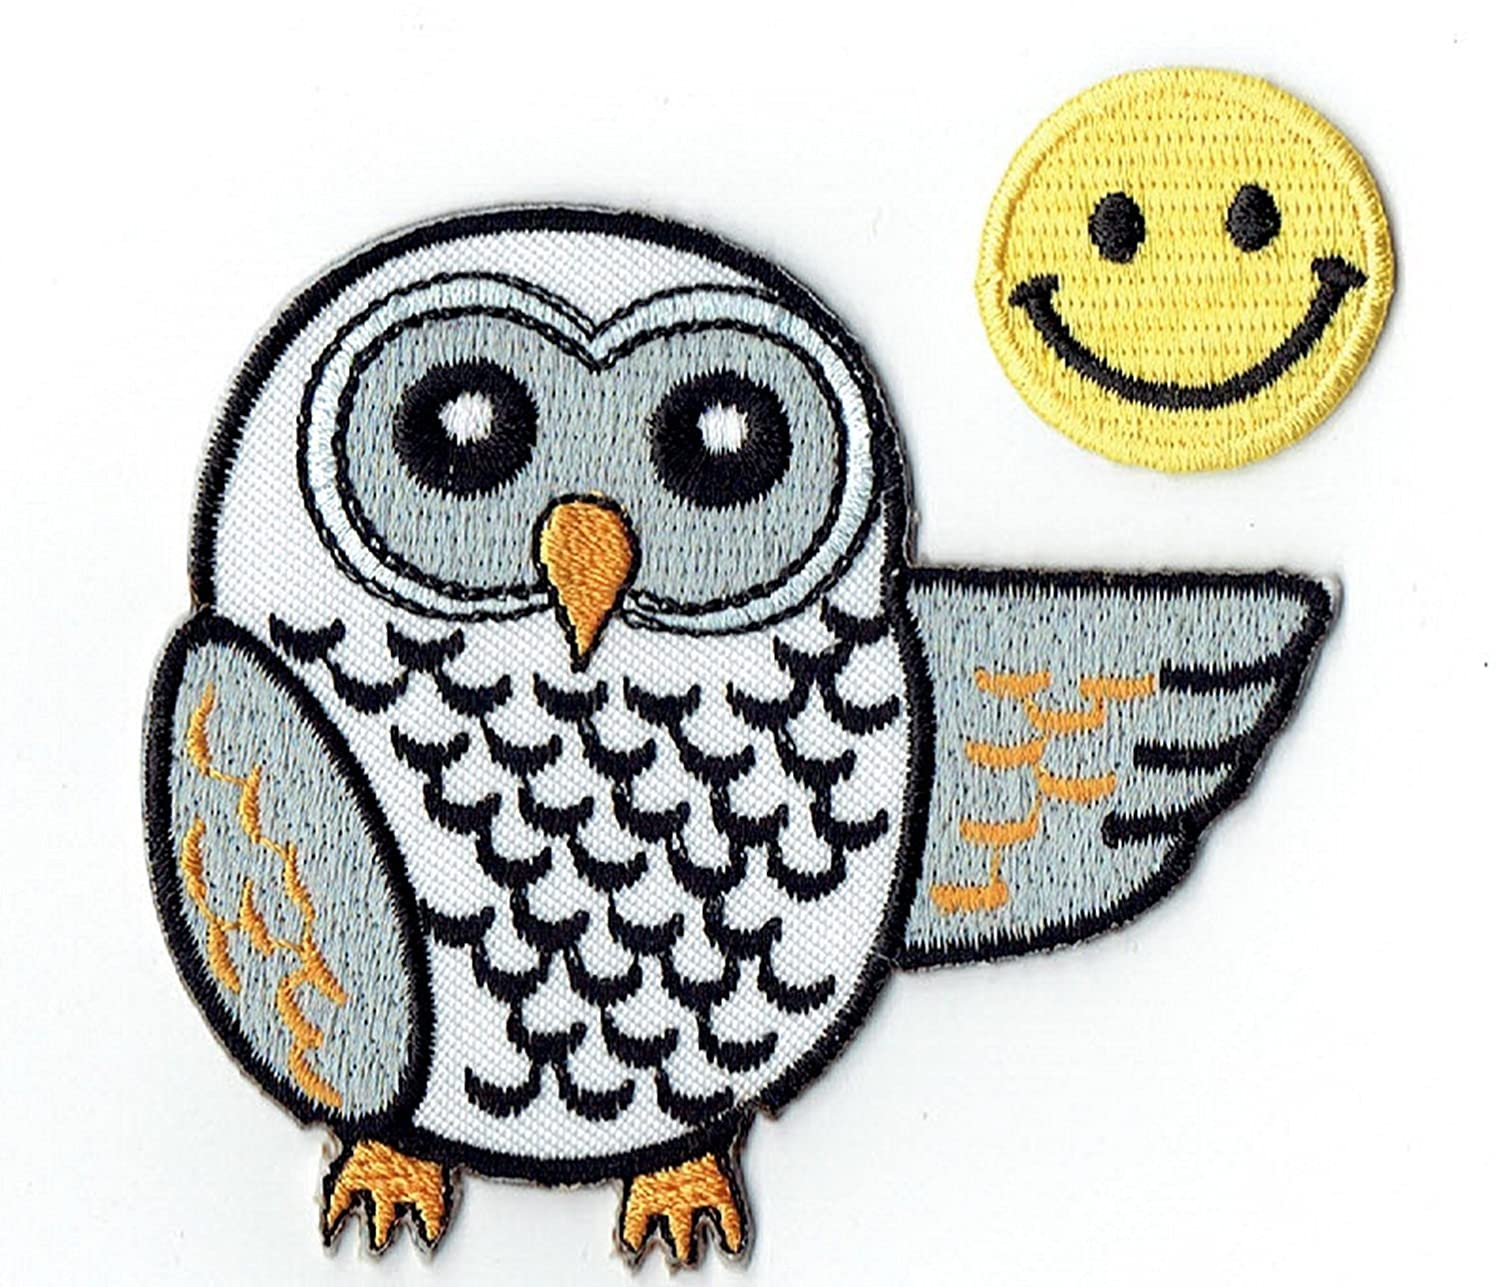 OWL Applique Embroidered Iron on Patches (Wappen, ワッペン, ??) with Yellow Tiny Smiley Patches by PATCH CUBE